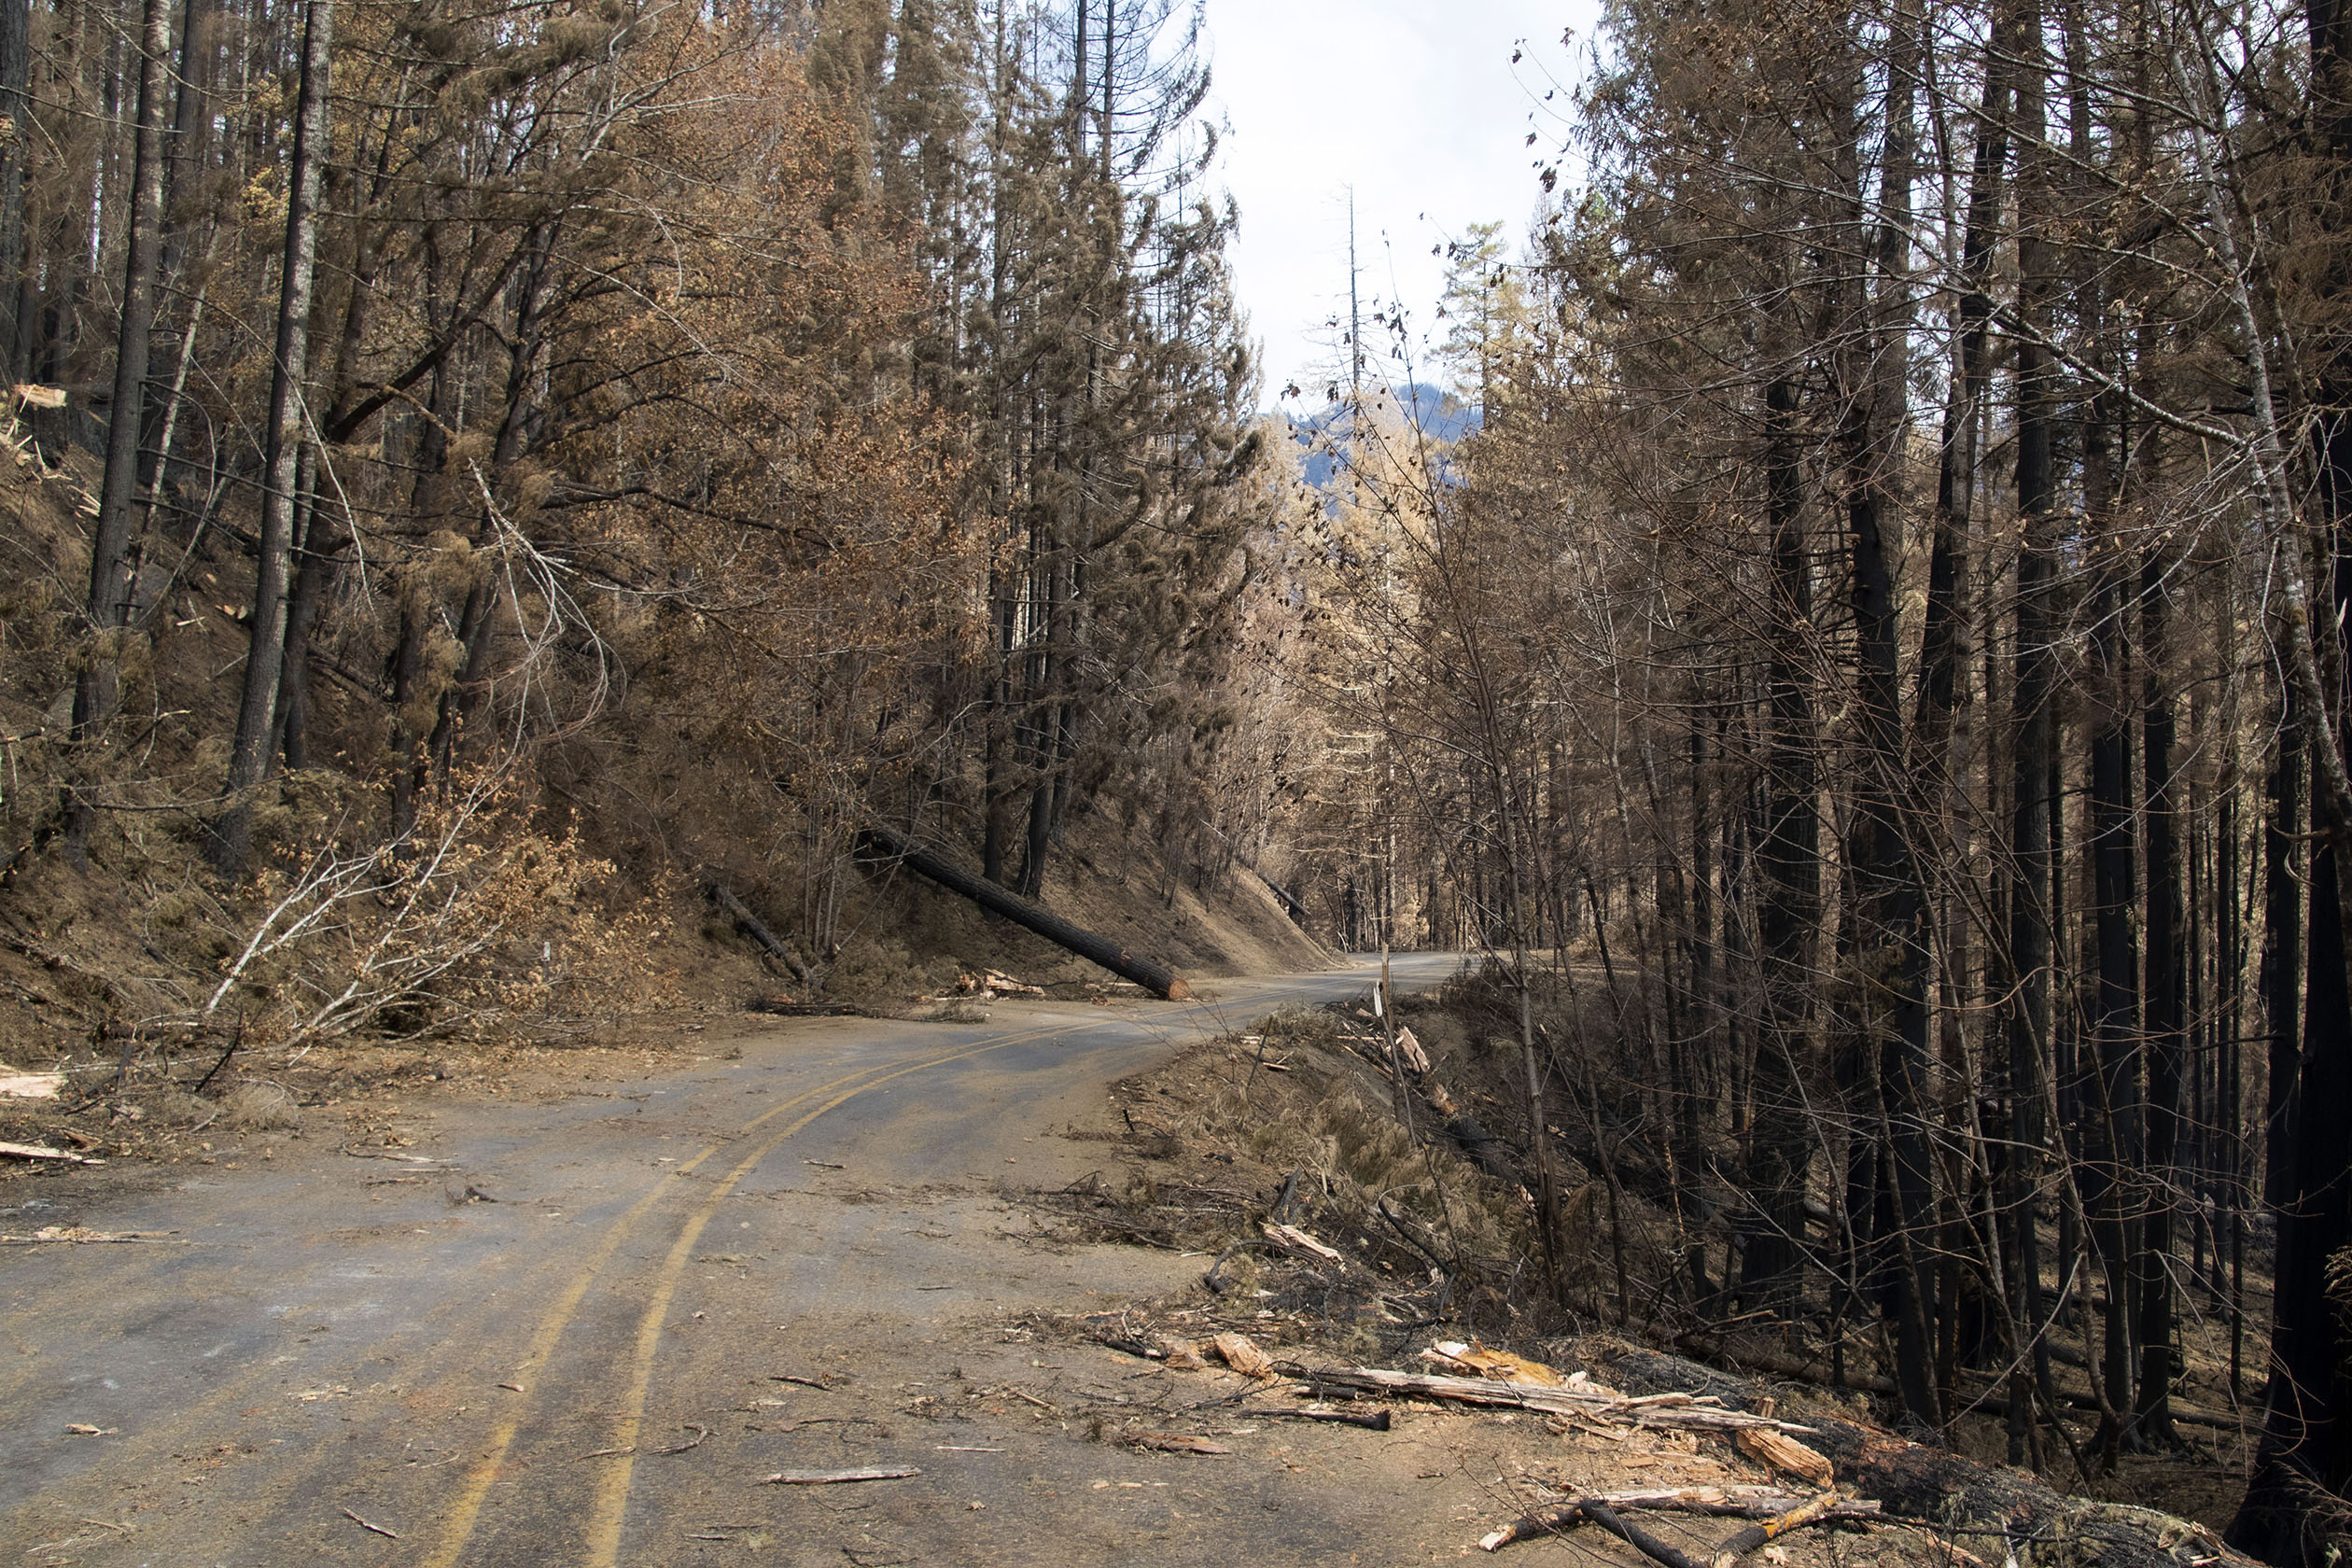 A narrow road curves through a forest burned by wildfire. The road is covered with fallen trees.